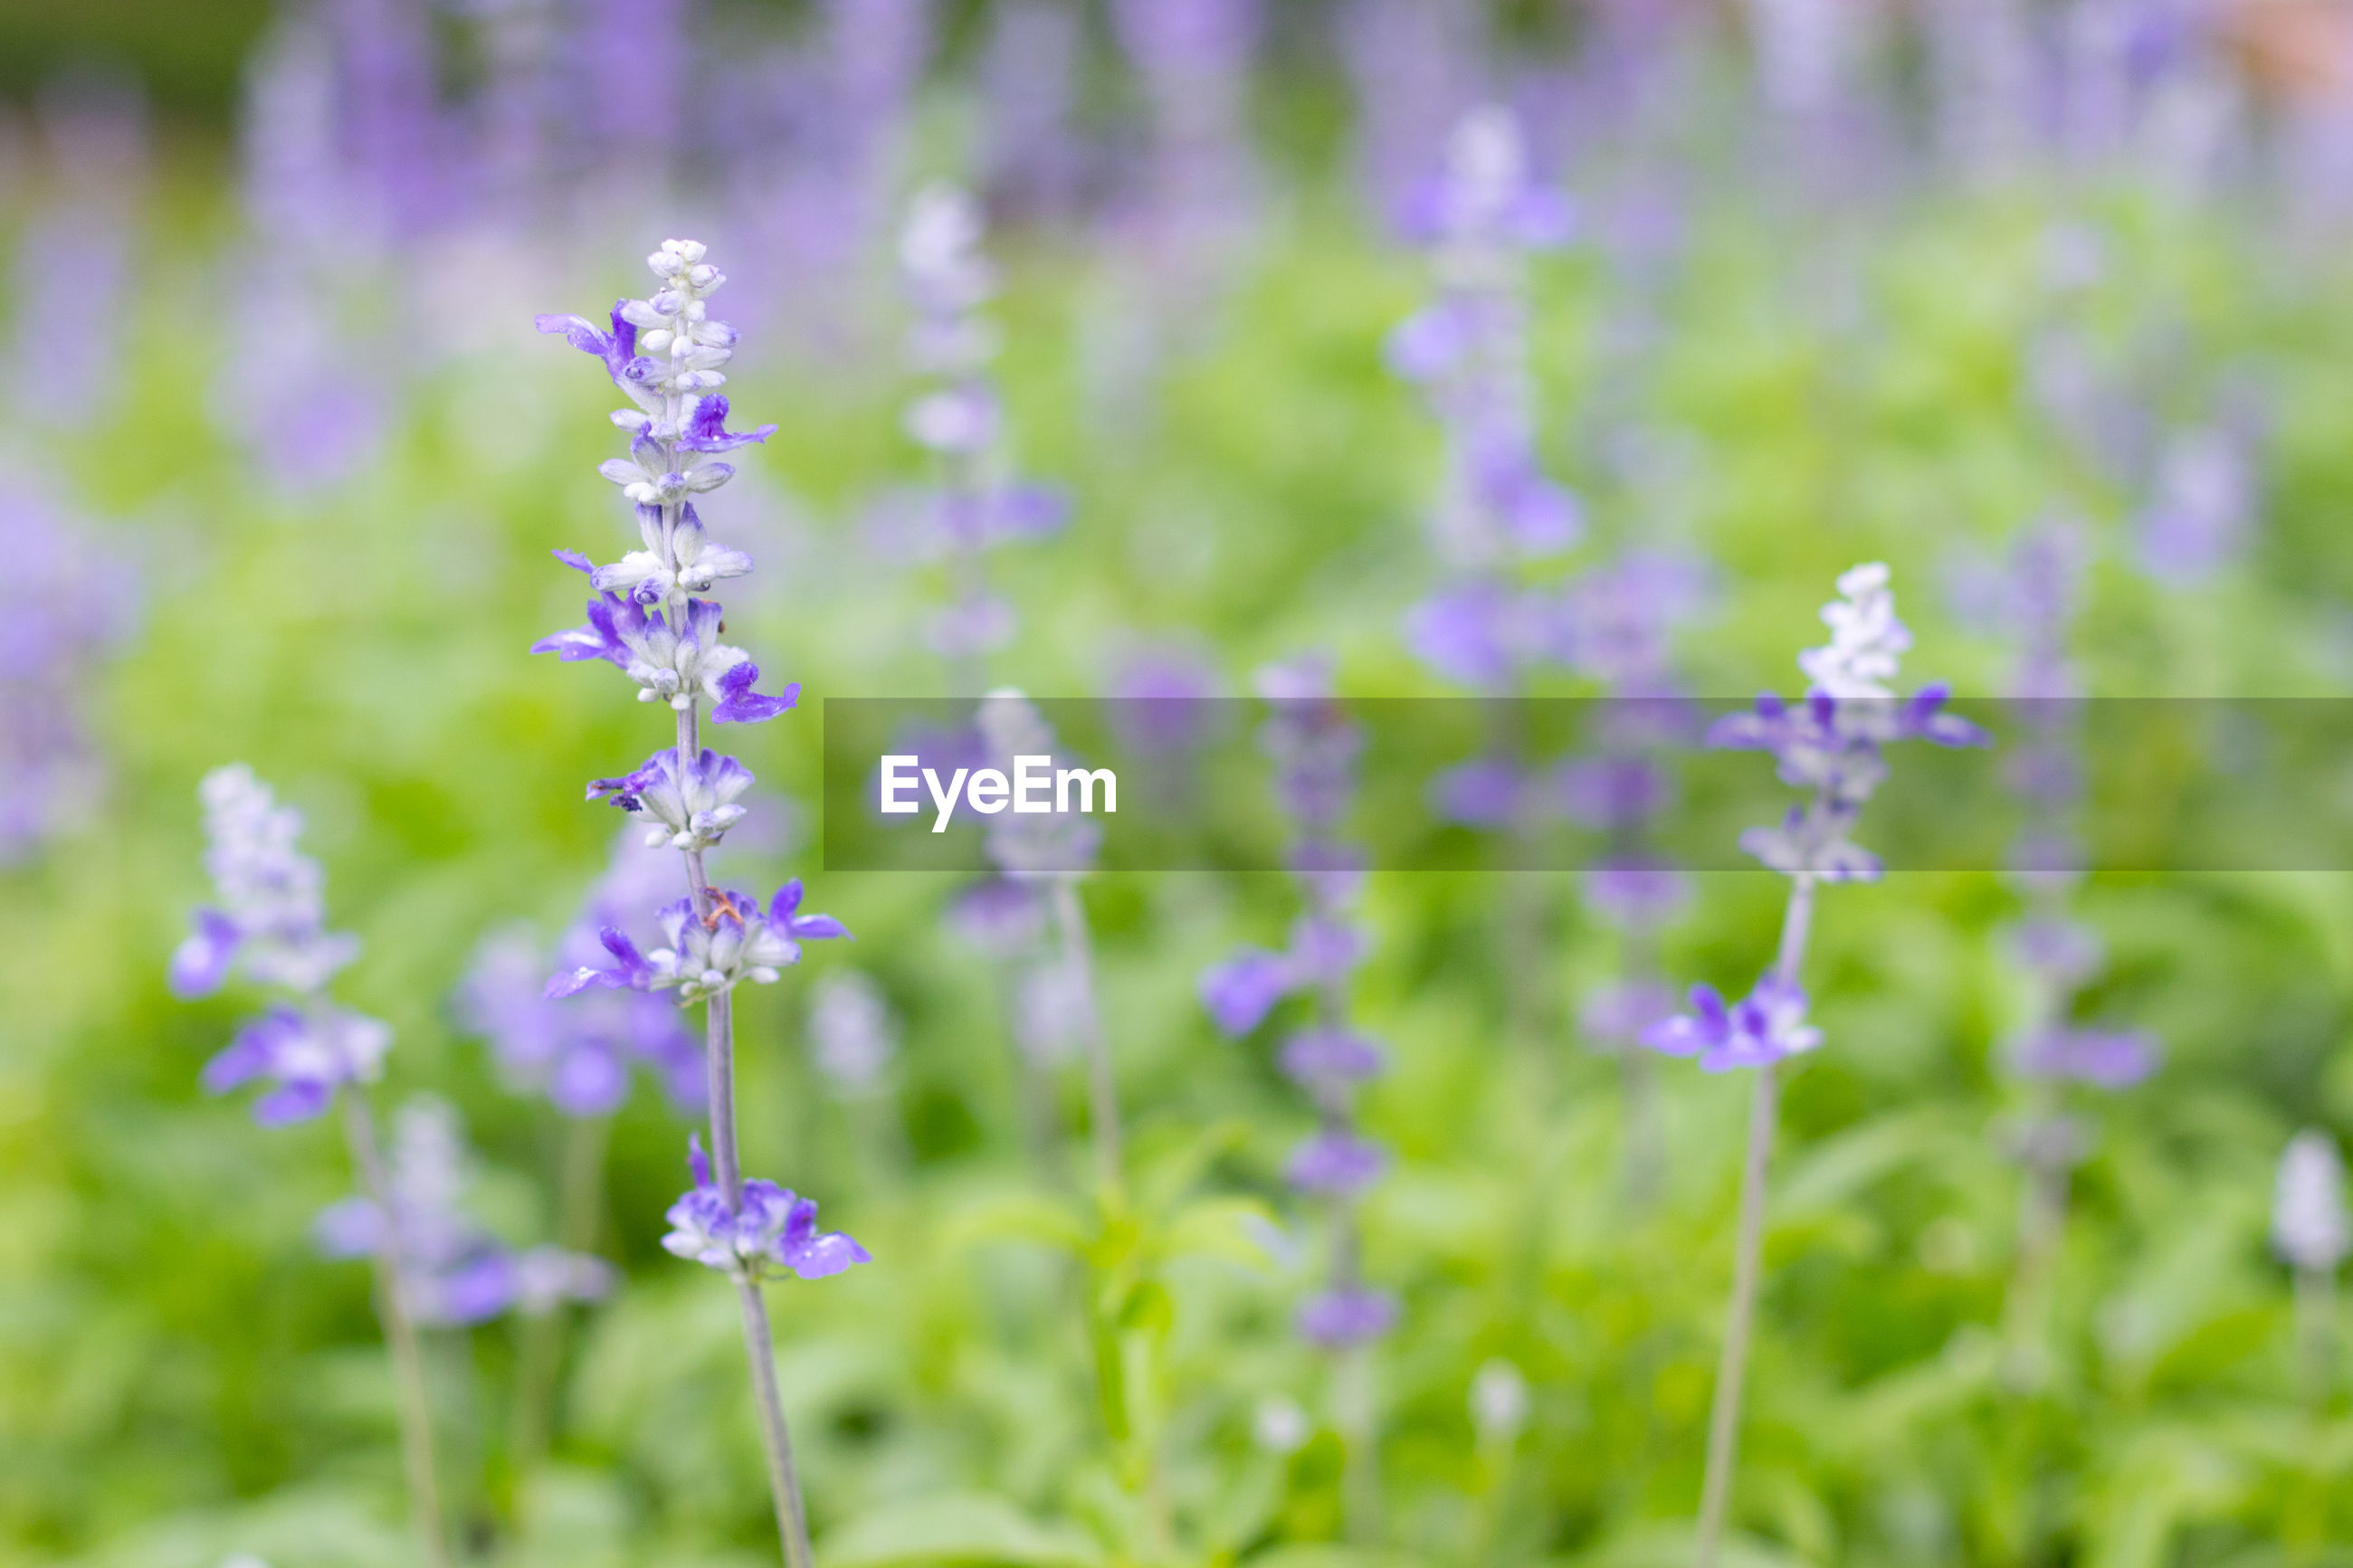 CLOSE-UP OF PURPLE FLOWER BLOOMING ON FIELD